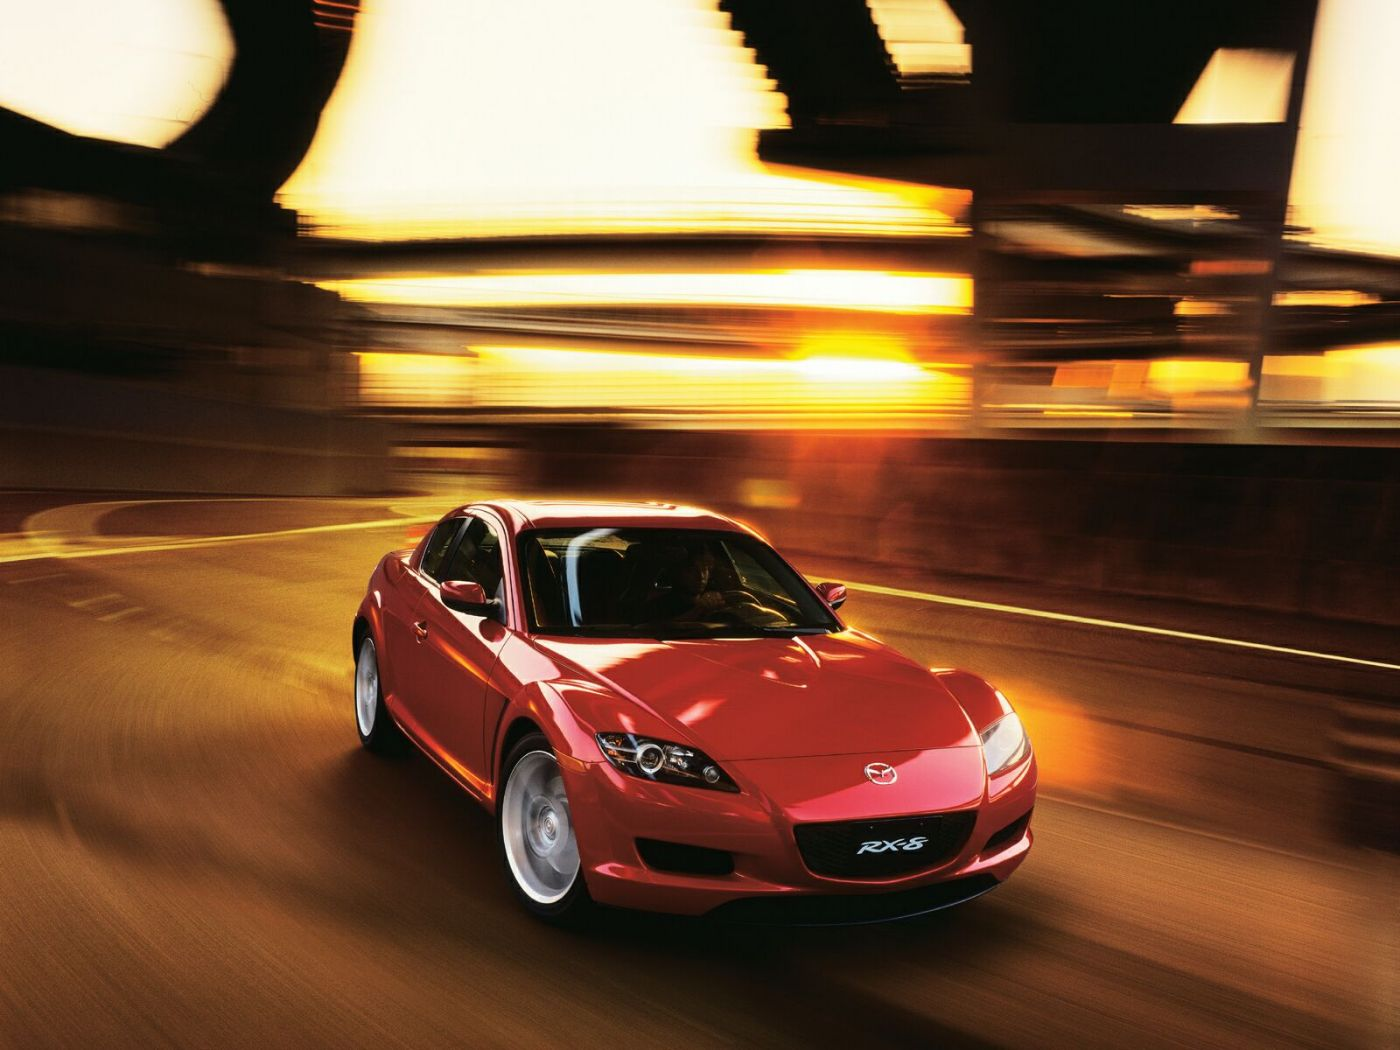 Mazda Rx8 Red Front Angle Moving Wallpaper 1400x1050